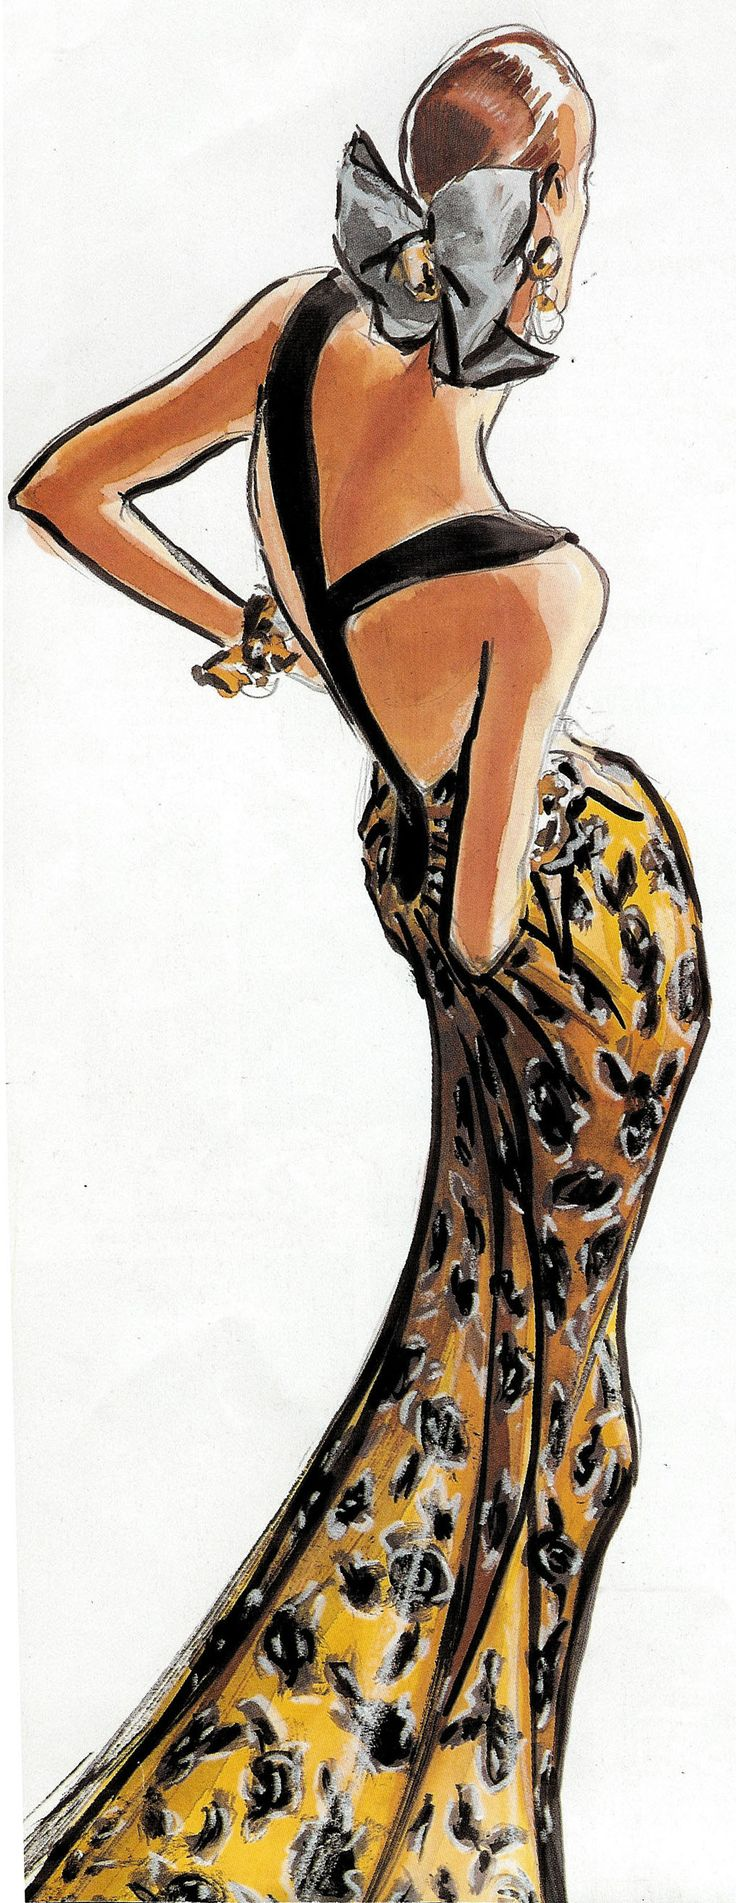 Do not know the name of the illustrator who drew these for Valentino in the 80s.